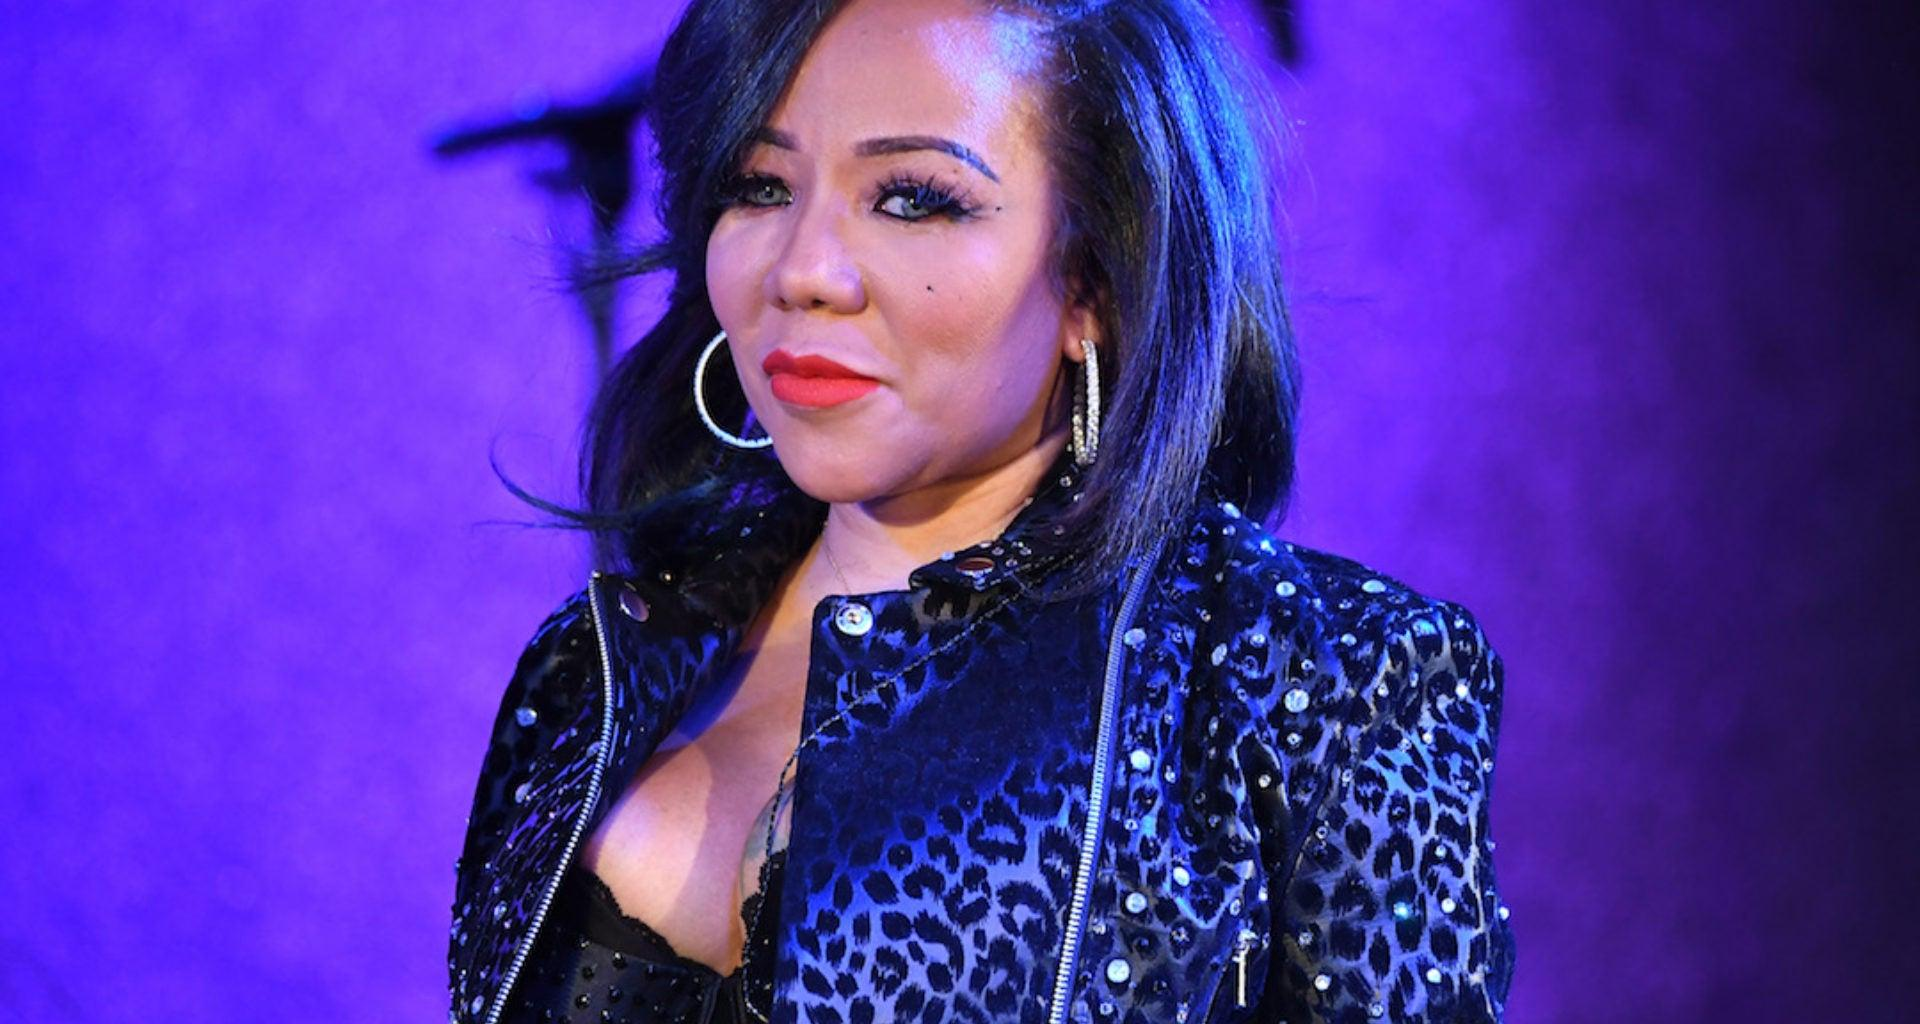 Tiny Harris And Her Blood Sister Pose Together Without Makeup And People Are In Awe